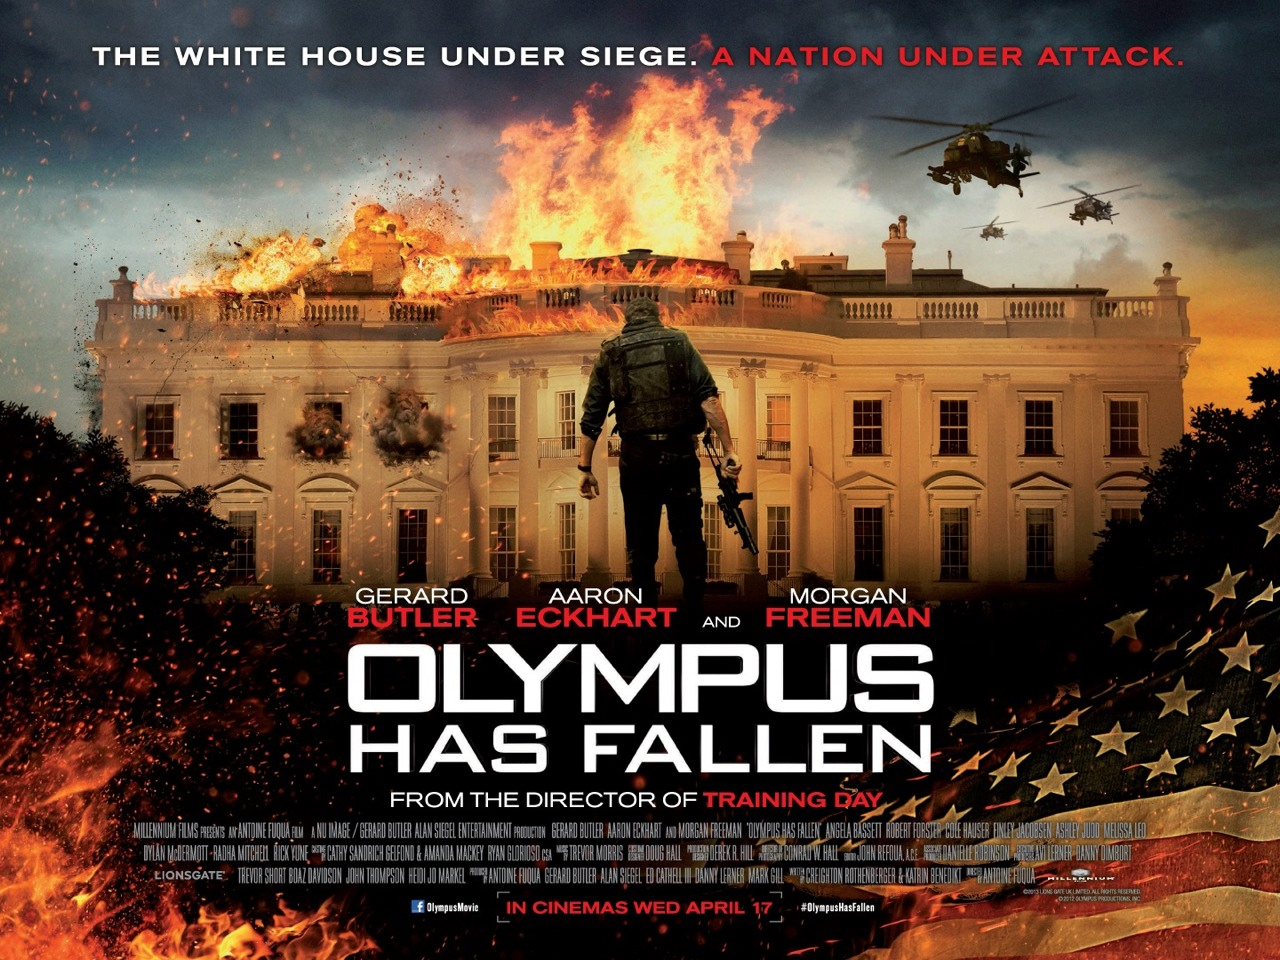 Looking for a mindless action flick to watch? Check out my review of the new Gerard Butler film #OlympusHasFallen https://evolverphoto.wordpress.com/2013/03/27/olympus-has-fallen-film-review/